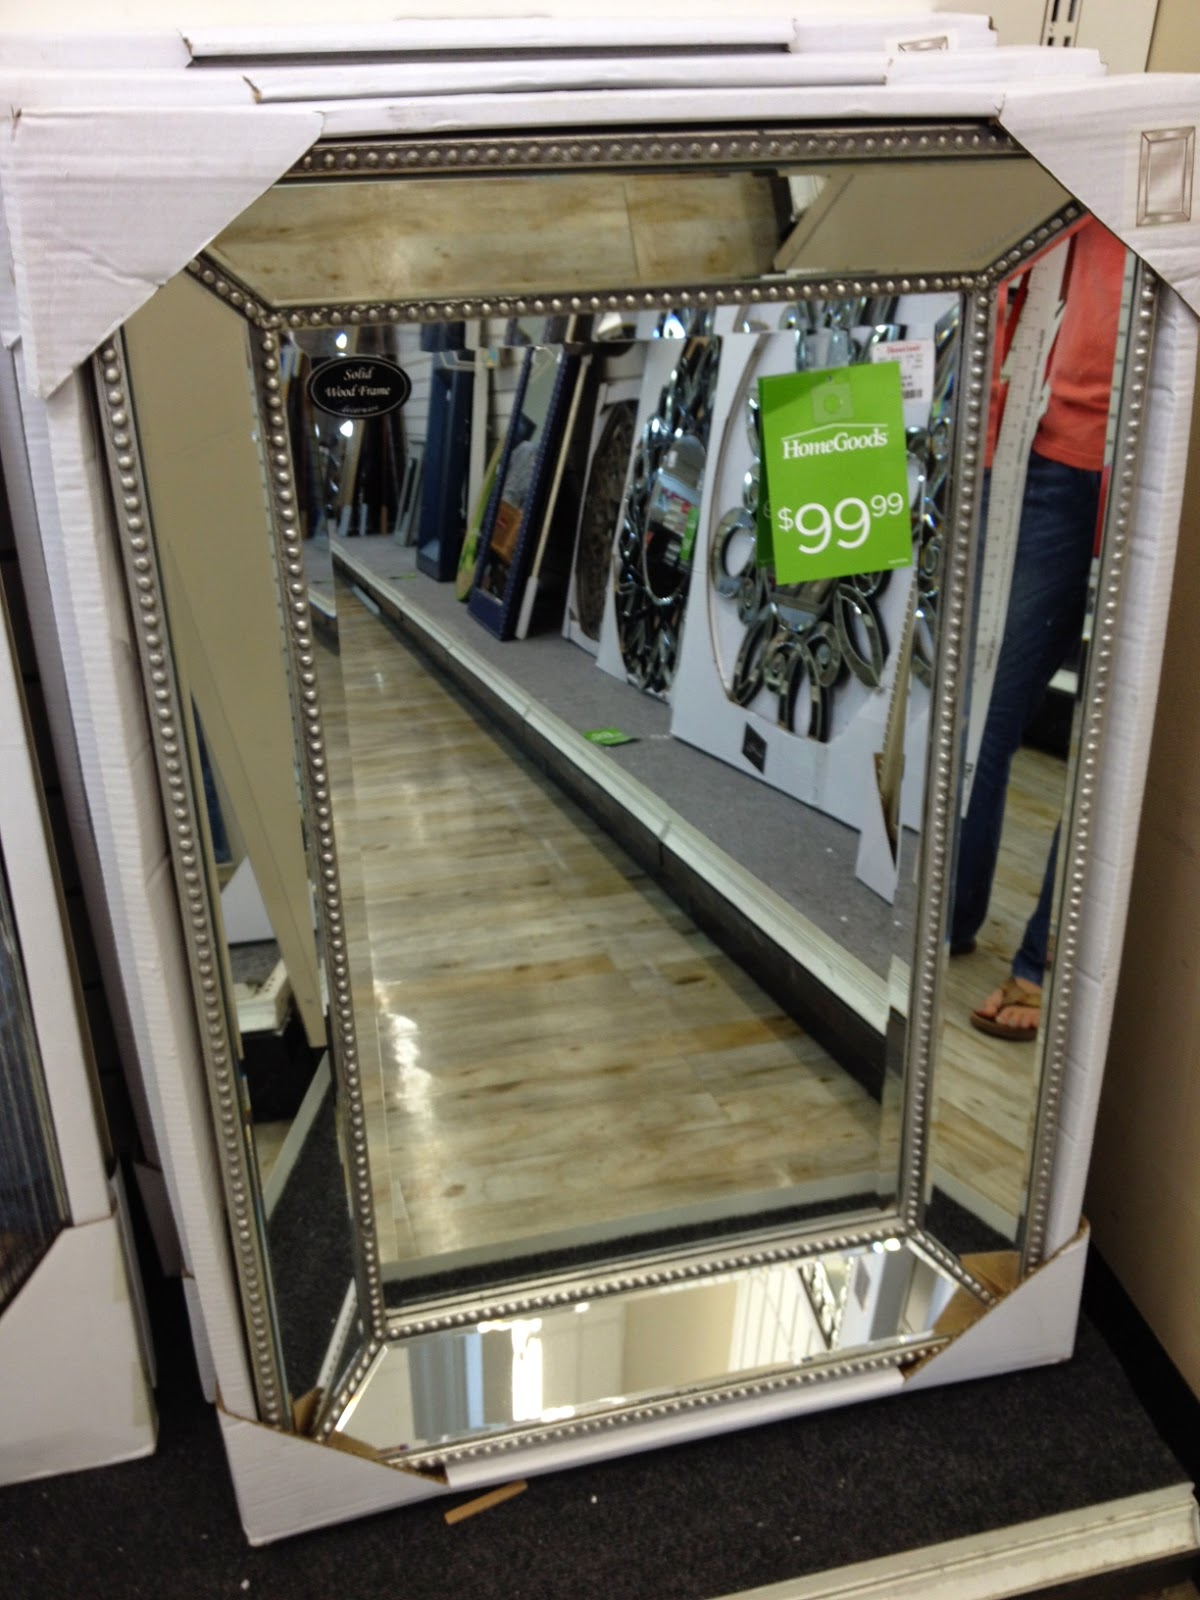 Mirrors I found at Home Goods for Master Bath  The Bakers Bluff October 2014